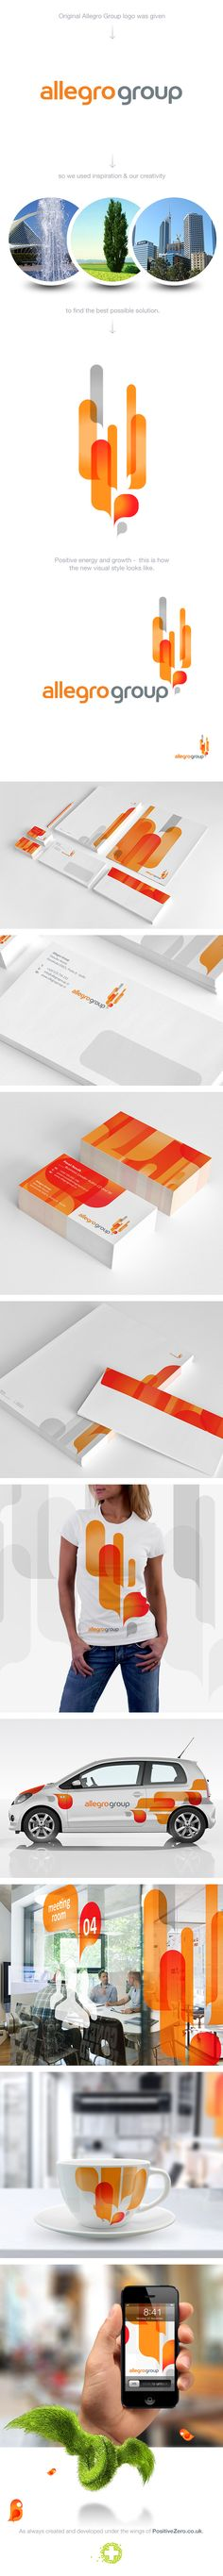 Allegro Group Branding | #stationary #corporate #design #corporatedesign #logo #identity #branding #marketing <<< repinned by an #advertising agency from #Hamburg / #Germany - www.BlickeDeeler.de